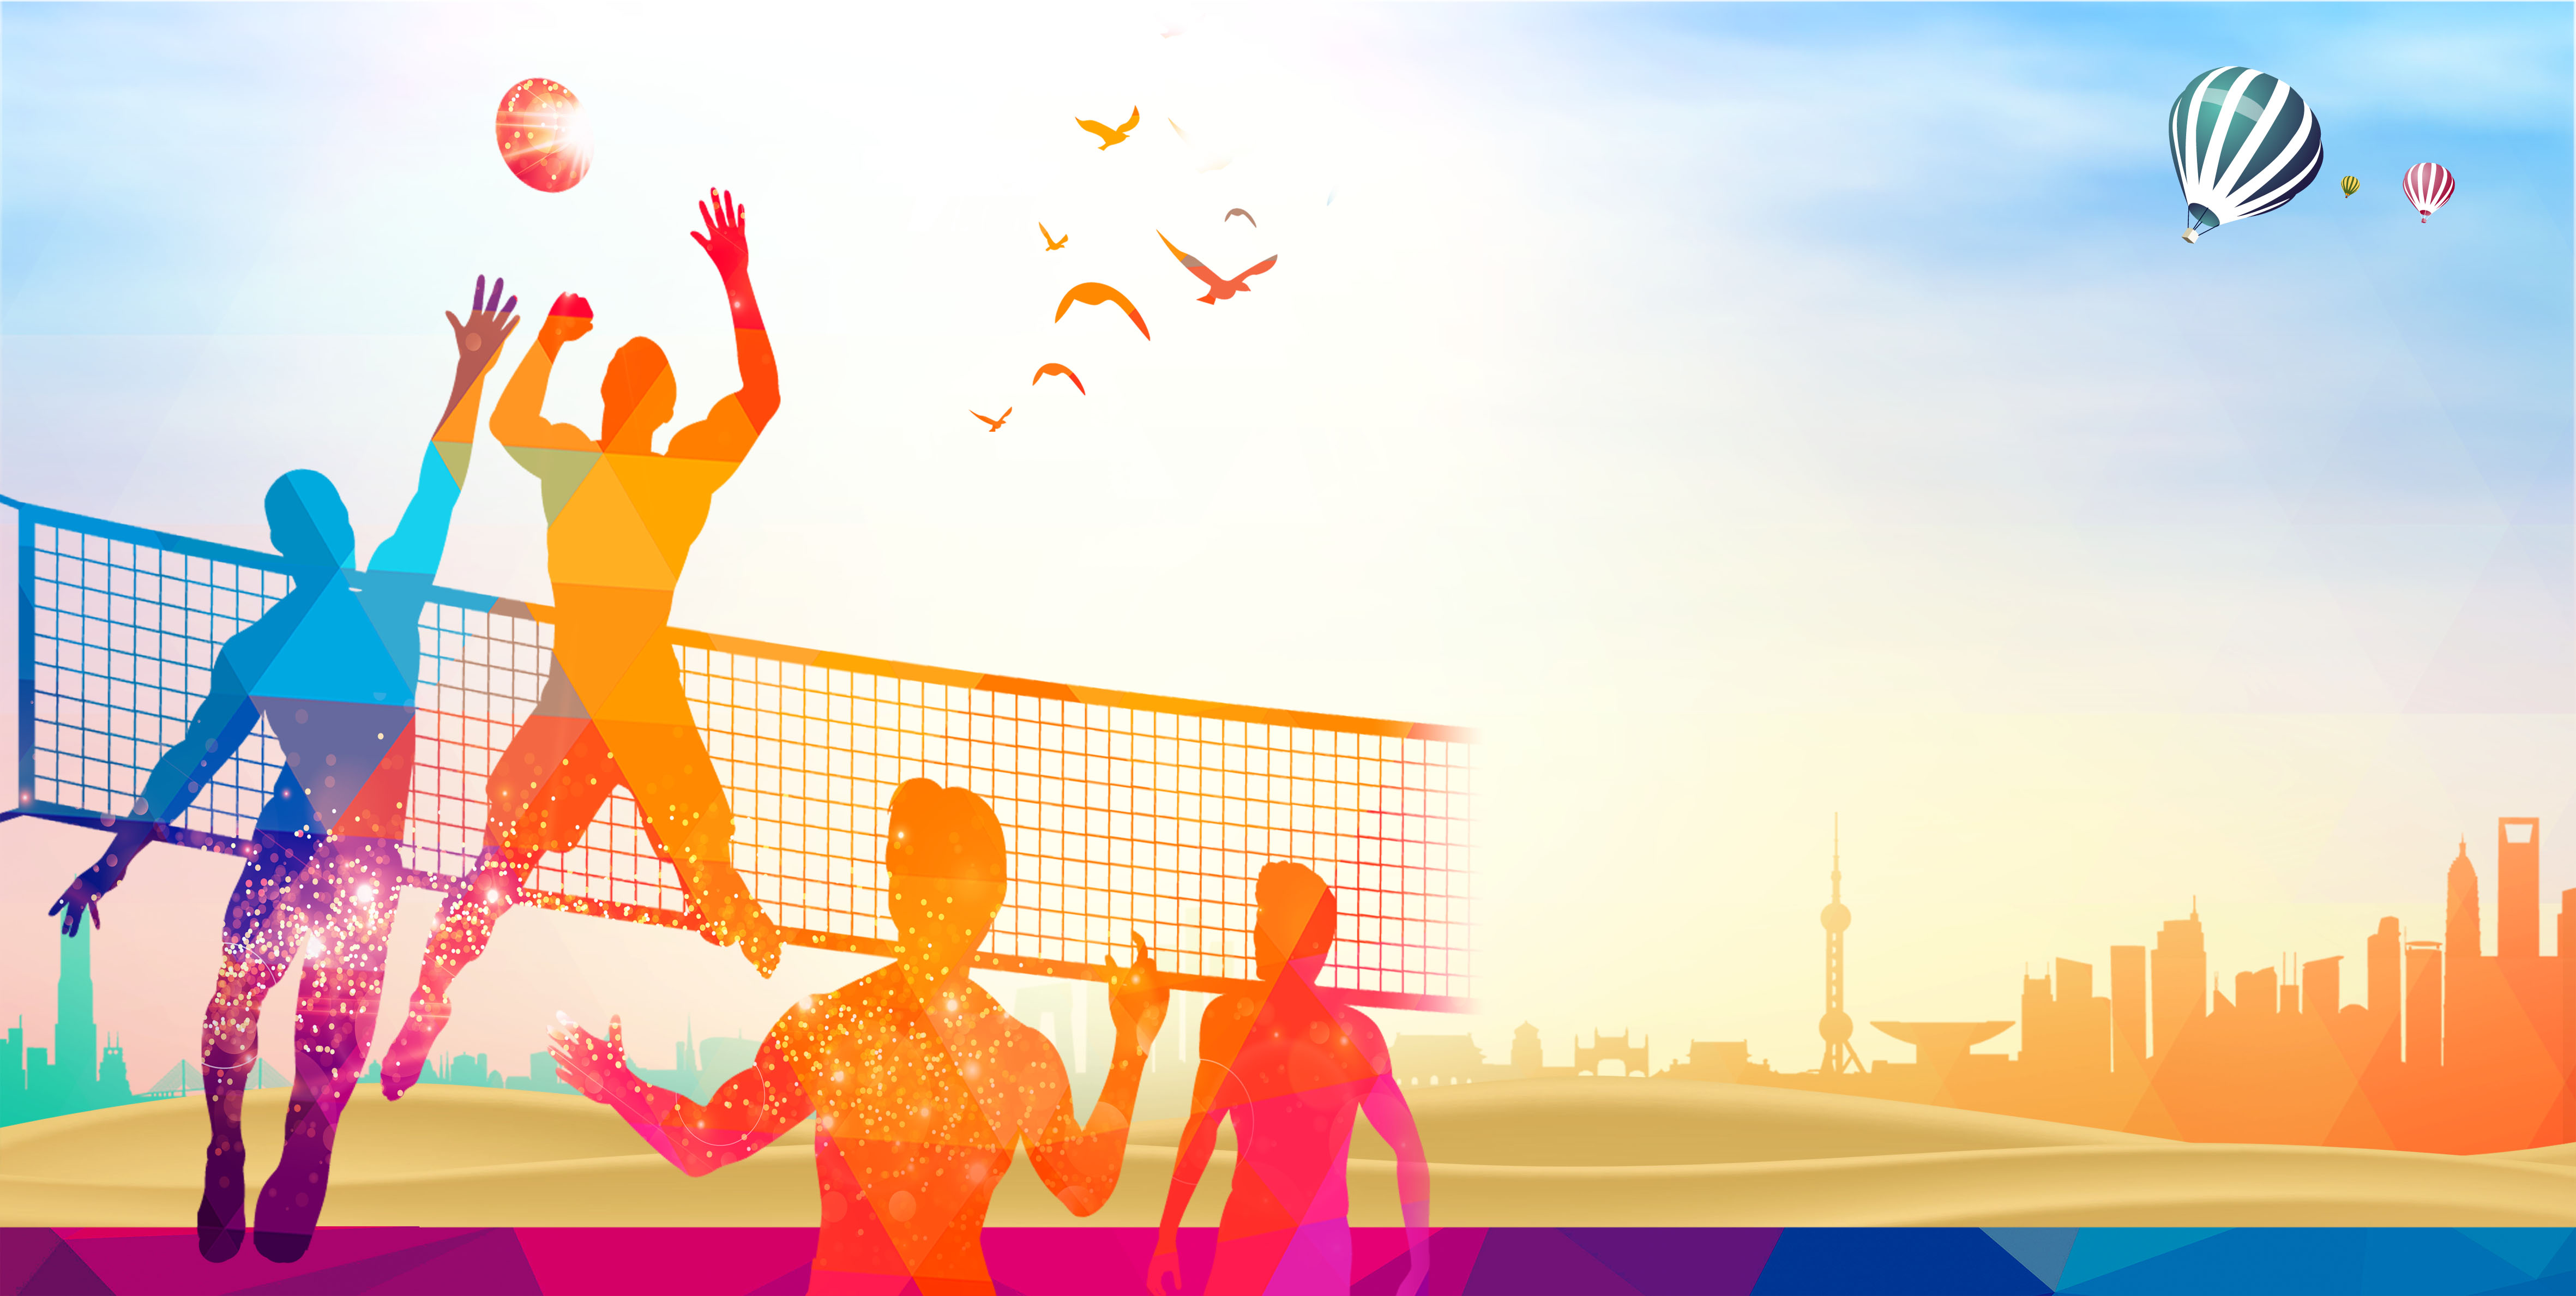 Background photos vectors . Clipart volleyball gambar